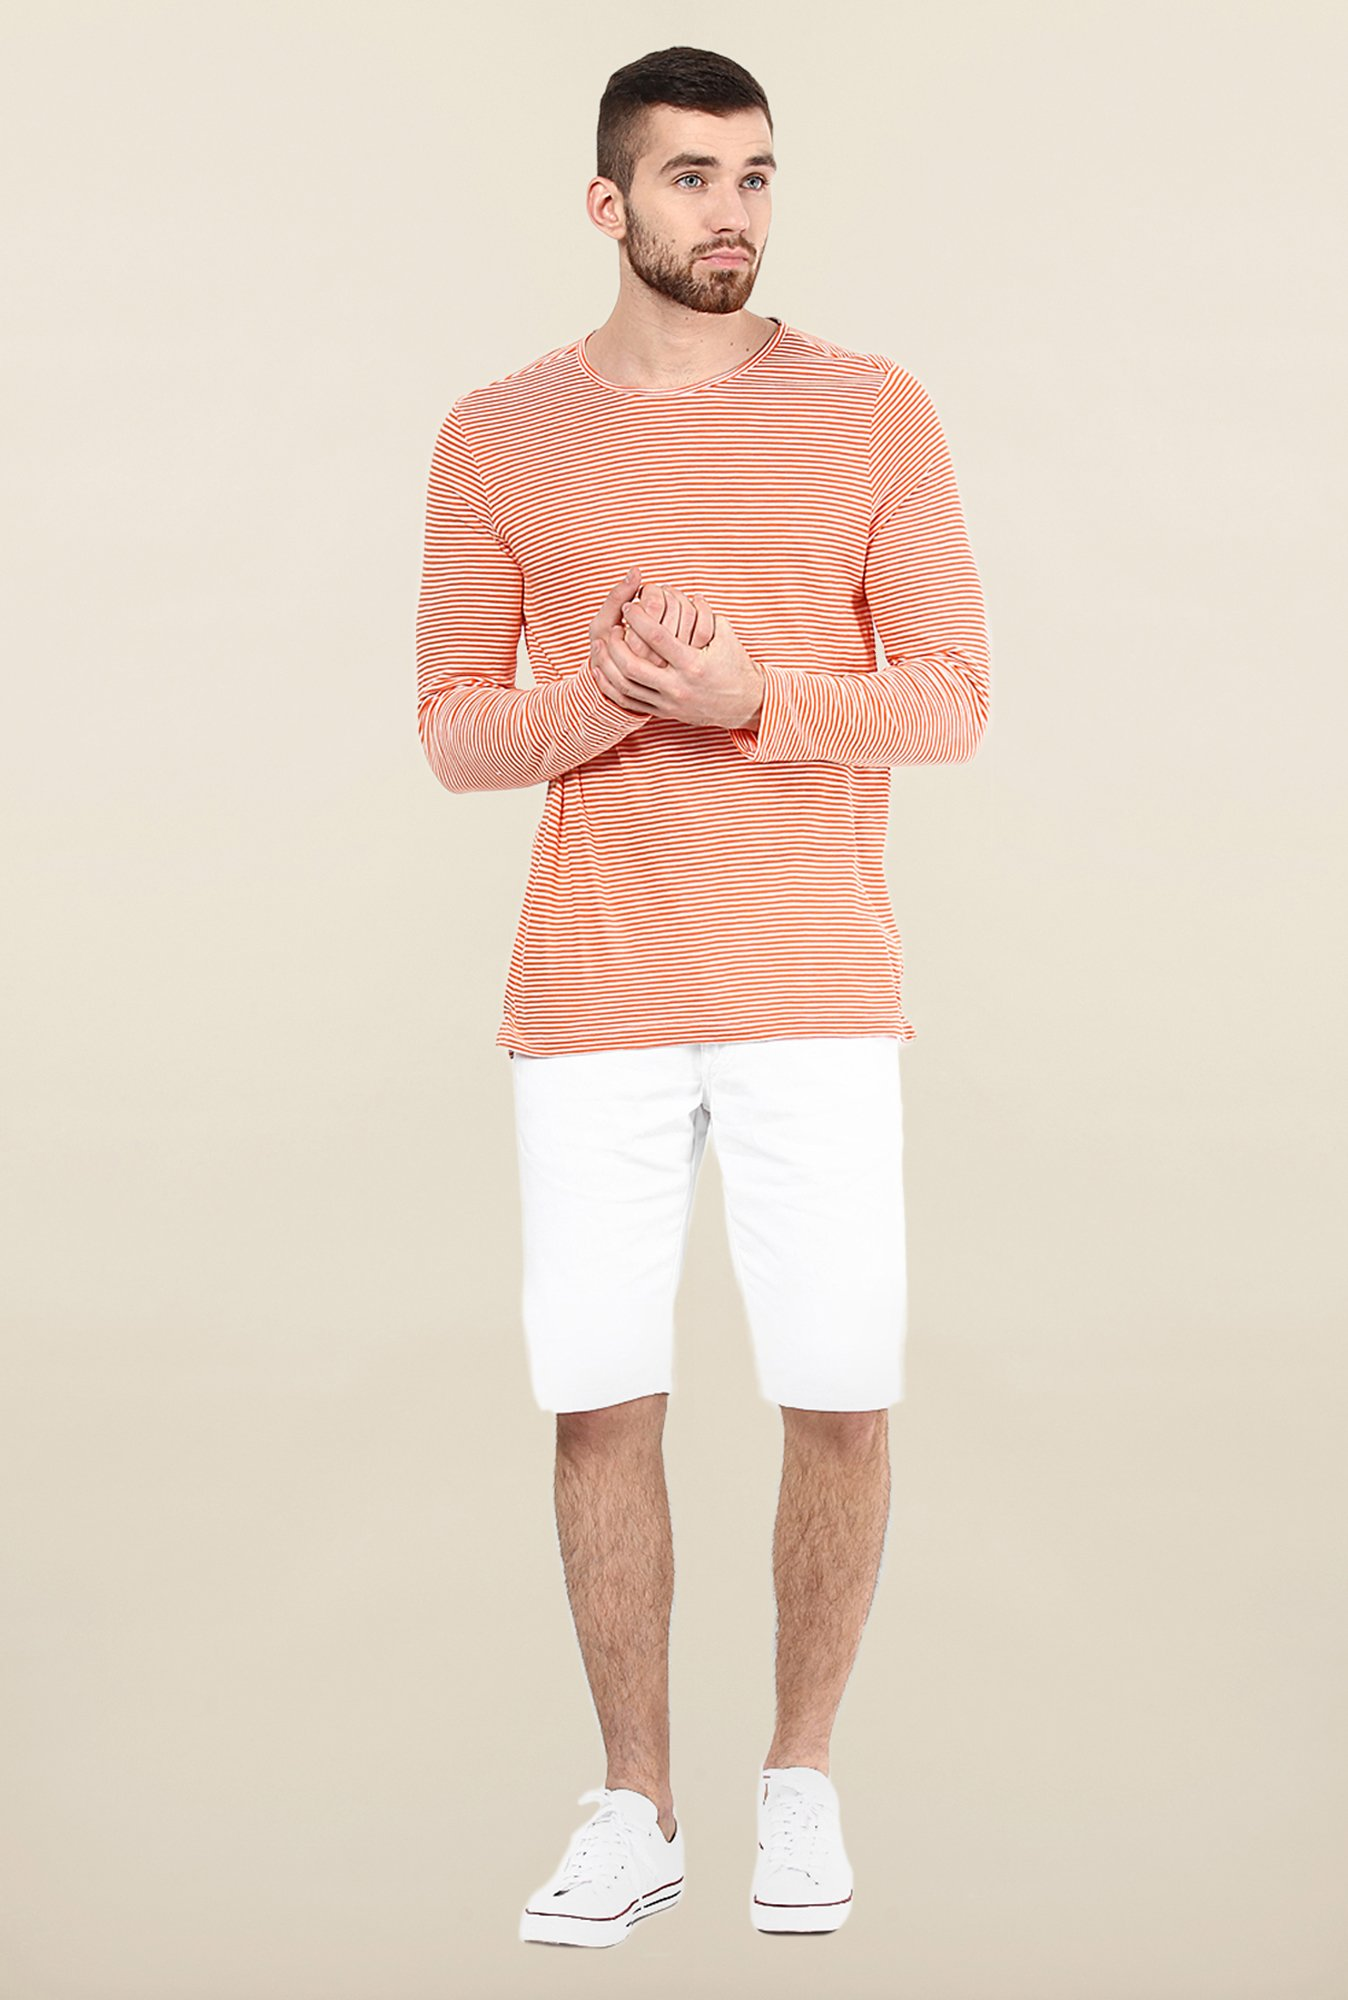 Jack & Jones Orange & White Striped T-Shirt